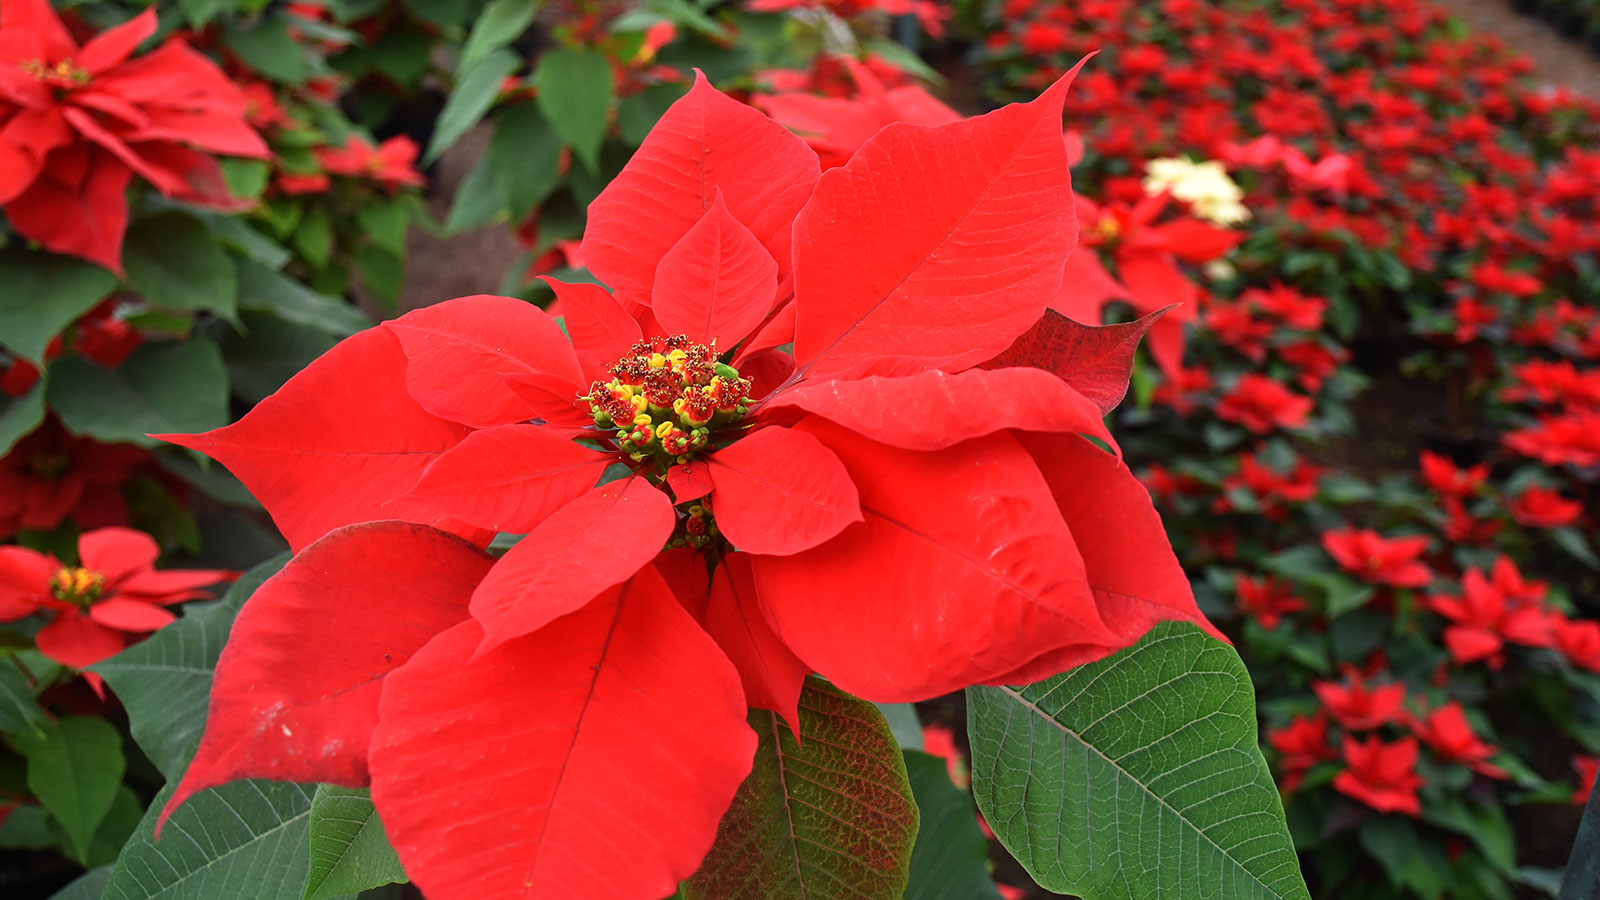 History Of The Poinsettia What Does The Poinsettia Have To Do With Christmas Howstuffworks